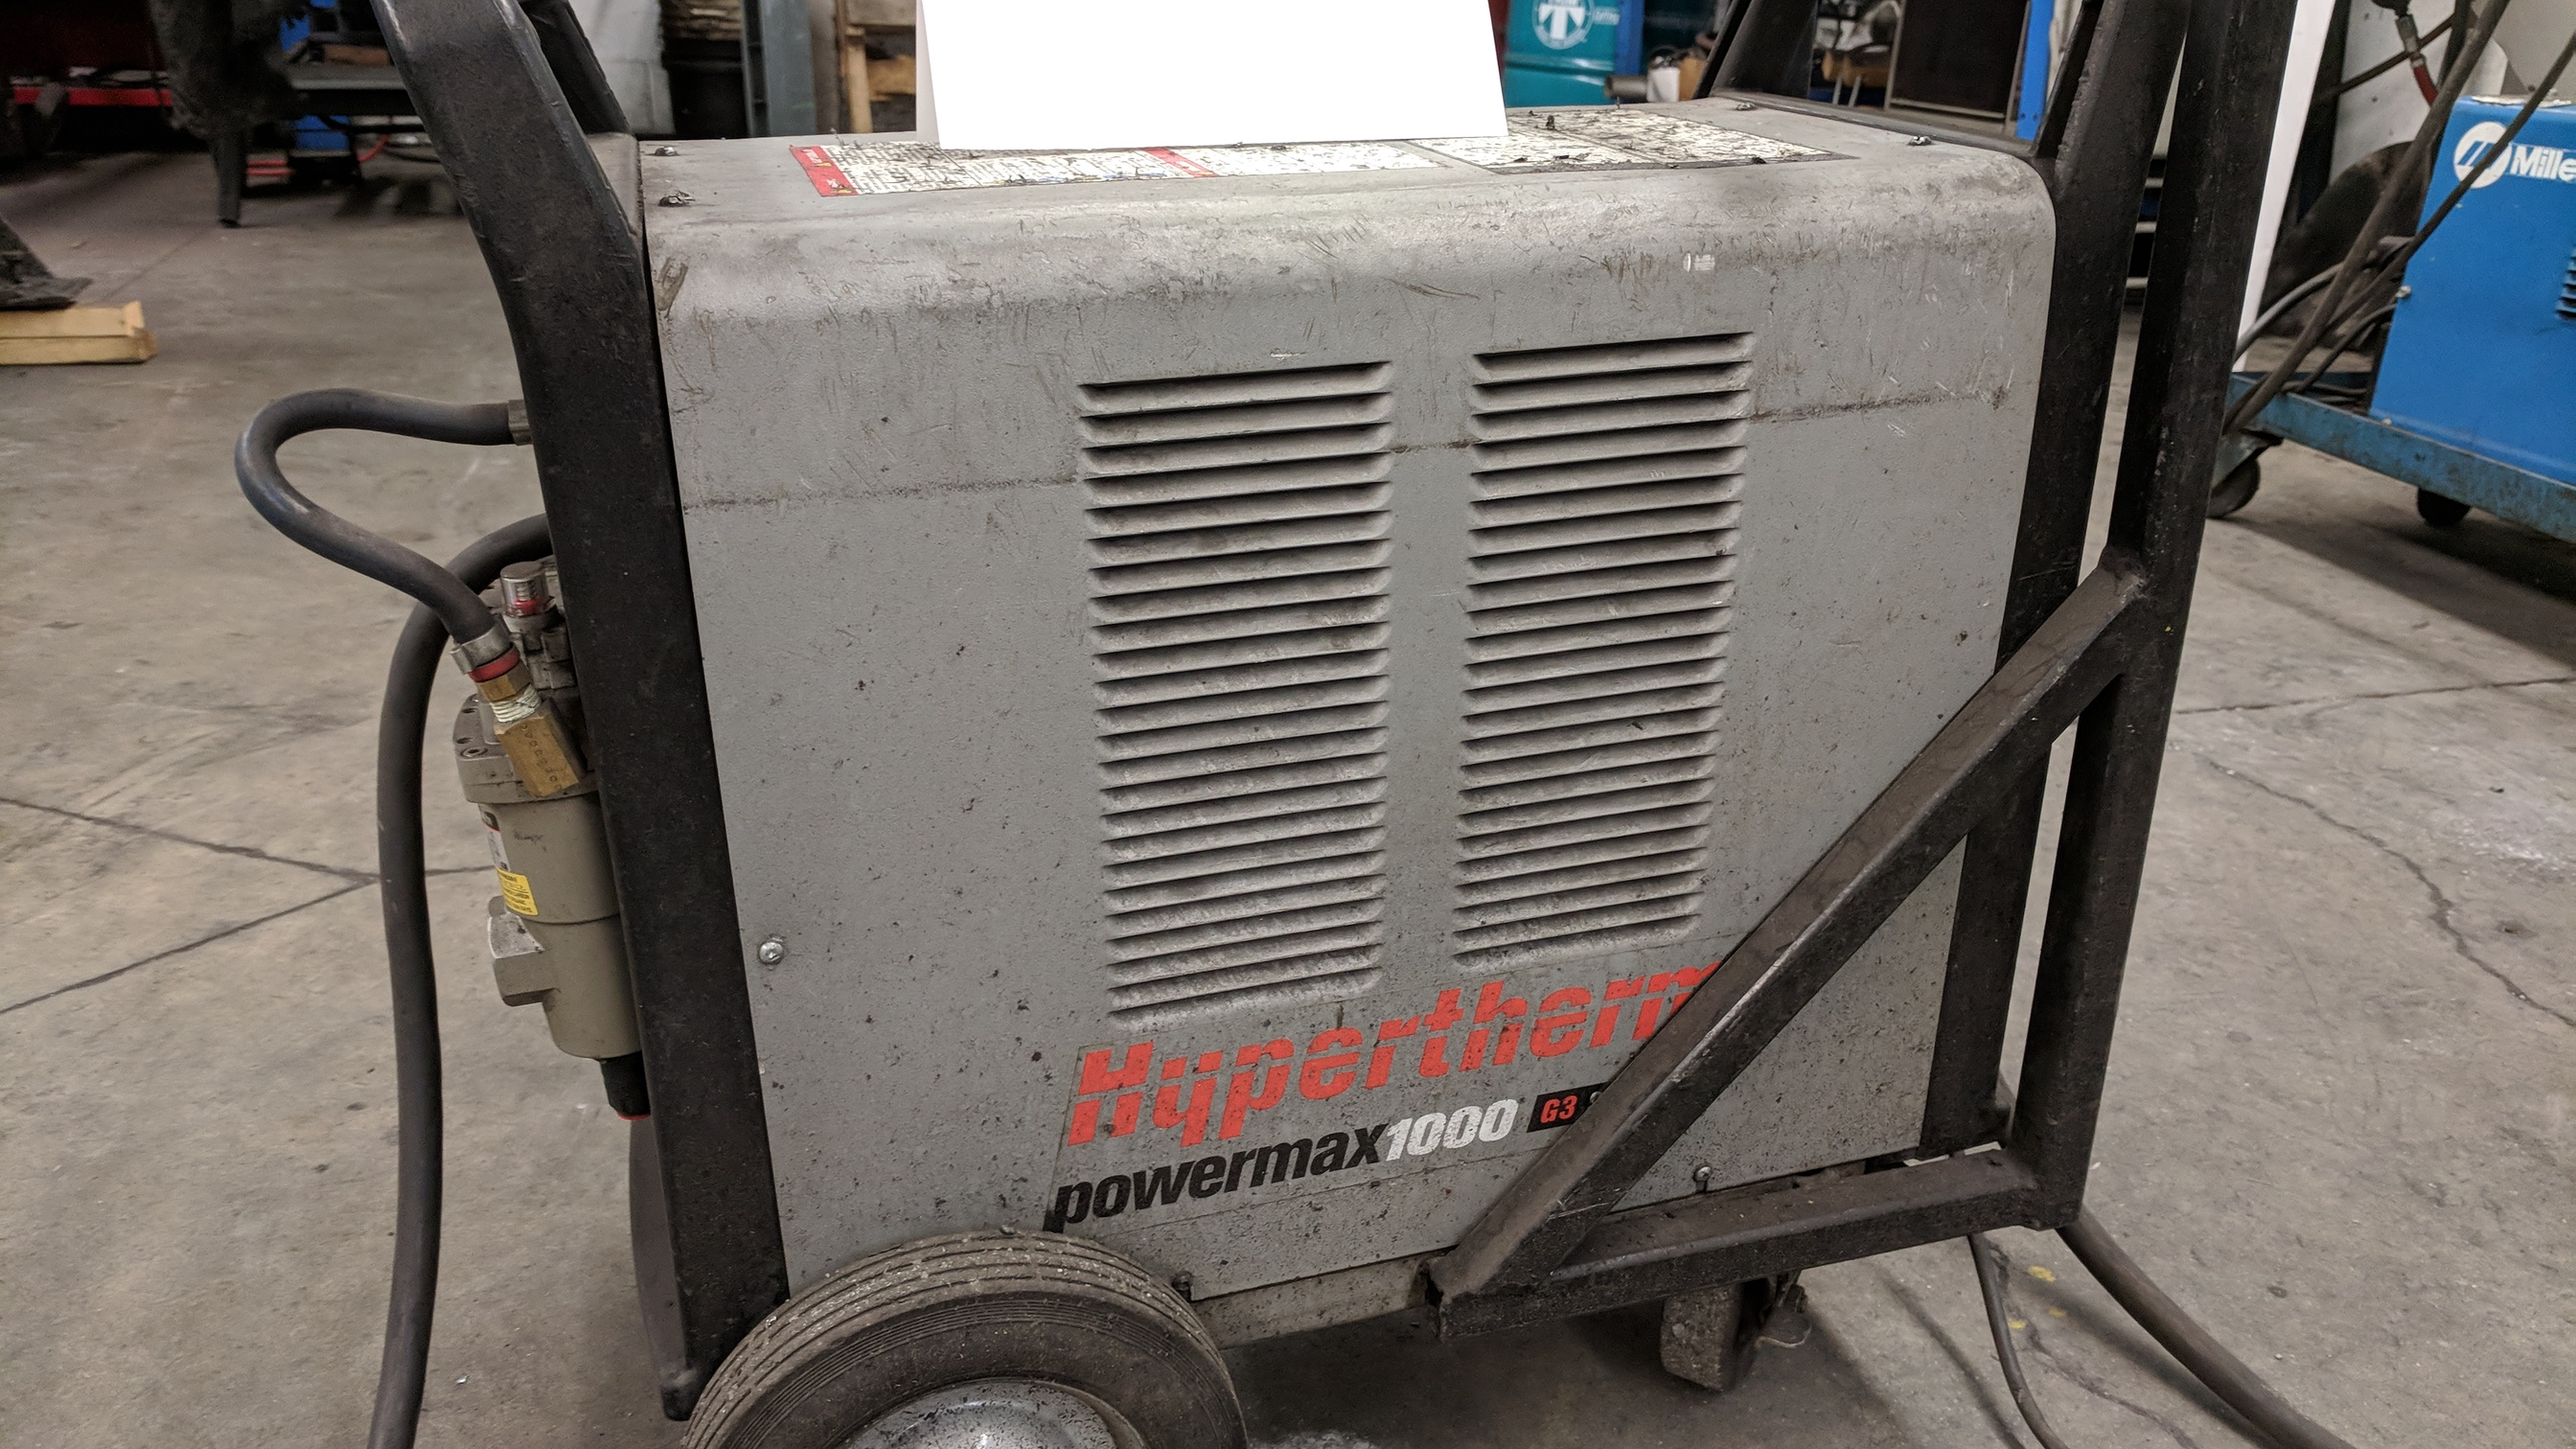 HYPERTHERM POWERMAX 1000 G3 SERIES PORTABLE PLASMA CUTTER WITH CABLES AND GUN, S/N N/A - Image 3 of 4